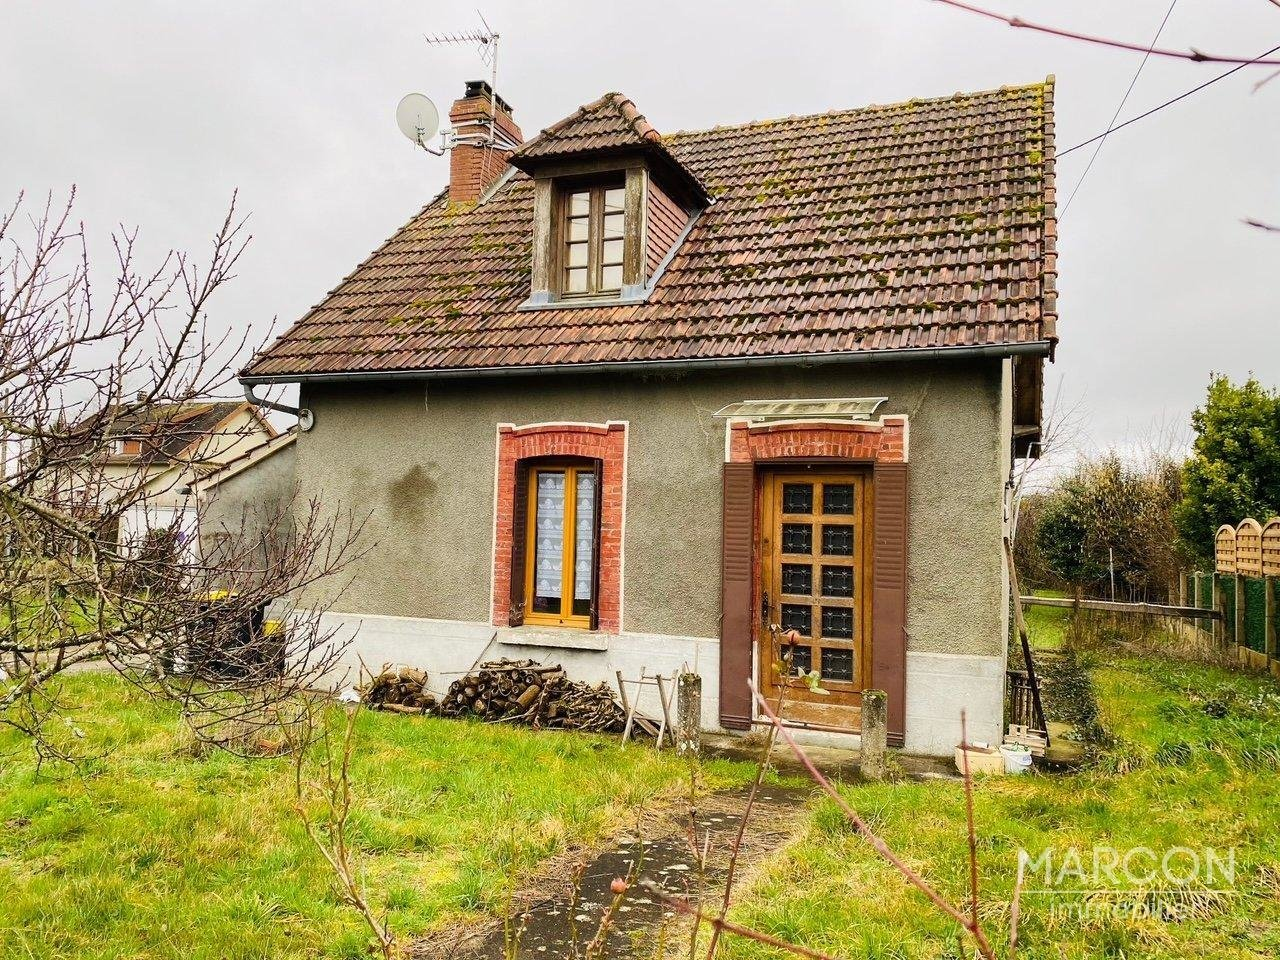 Property for Sale Up To €50k France #houseinfrance #renovering #fönsterluckor #house #fromage #francelovers #southoffrance #renovationproject #yum #shhh #maison #fromages #frenchfood #france #cheeselover #renoveringsprojekt #travelposter #livingfrance #fromagefrancais #frenchcountrylife #cuisine #castlefrance #chateau #france #ostrzycki #napoleon #moyenage #iledefrance #histoiredefrance #oldcastle #monumentshistoriques #historiafrancji #histoire #renaissance #musee #louisxiv #historia #castle #globetrotter #château